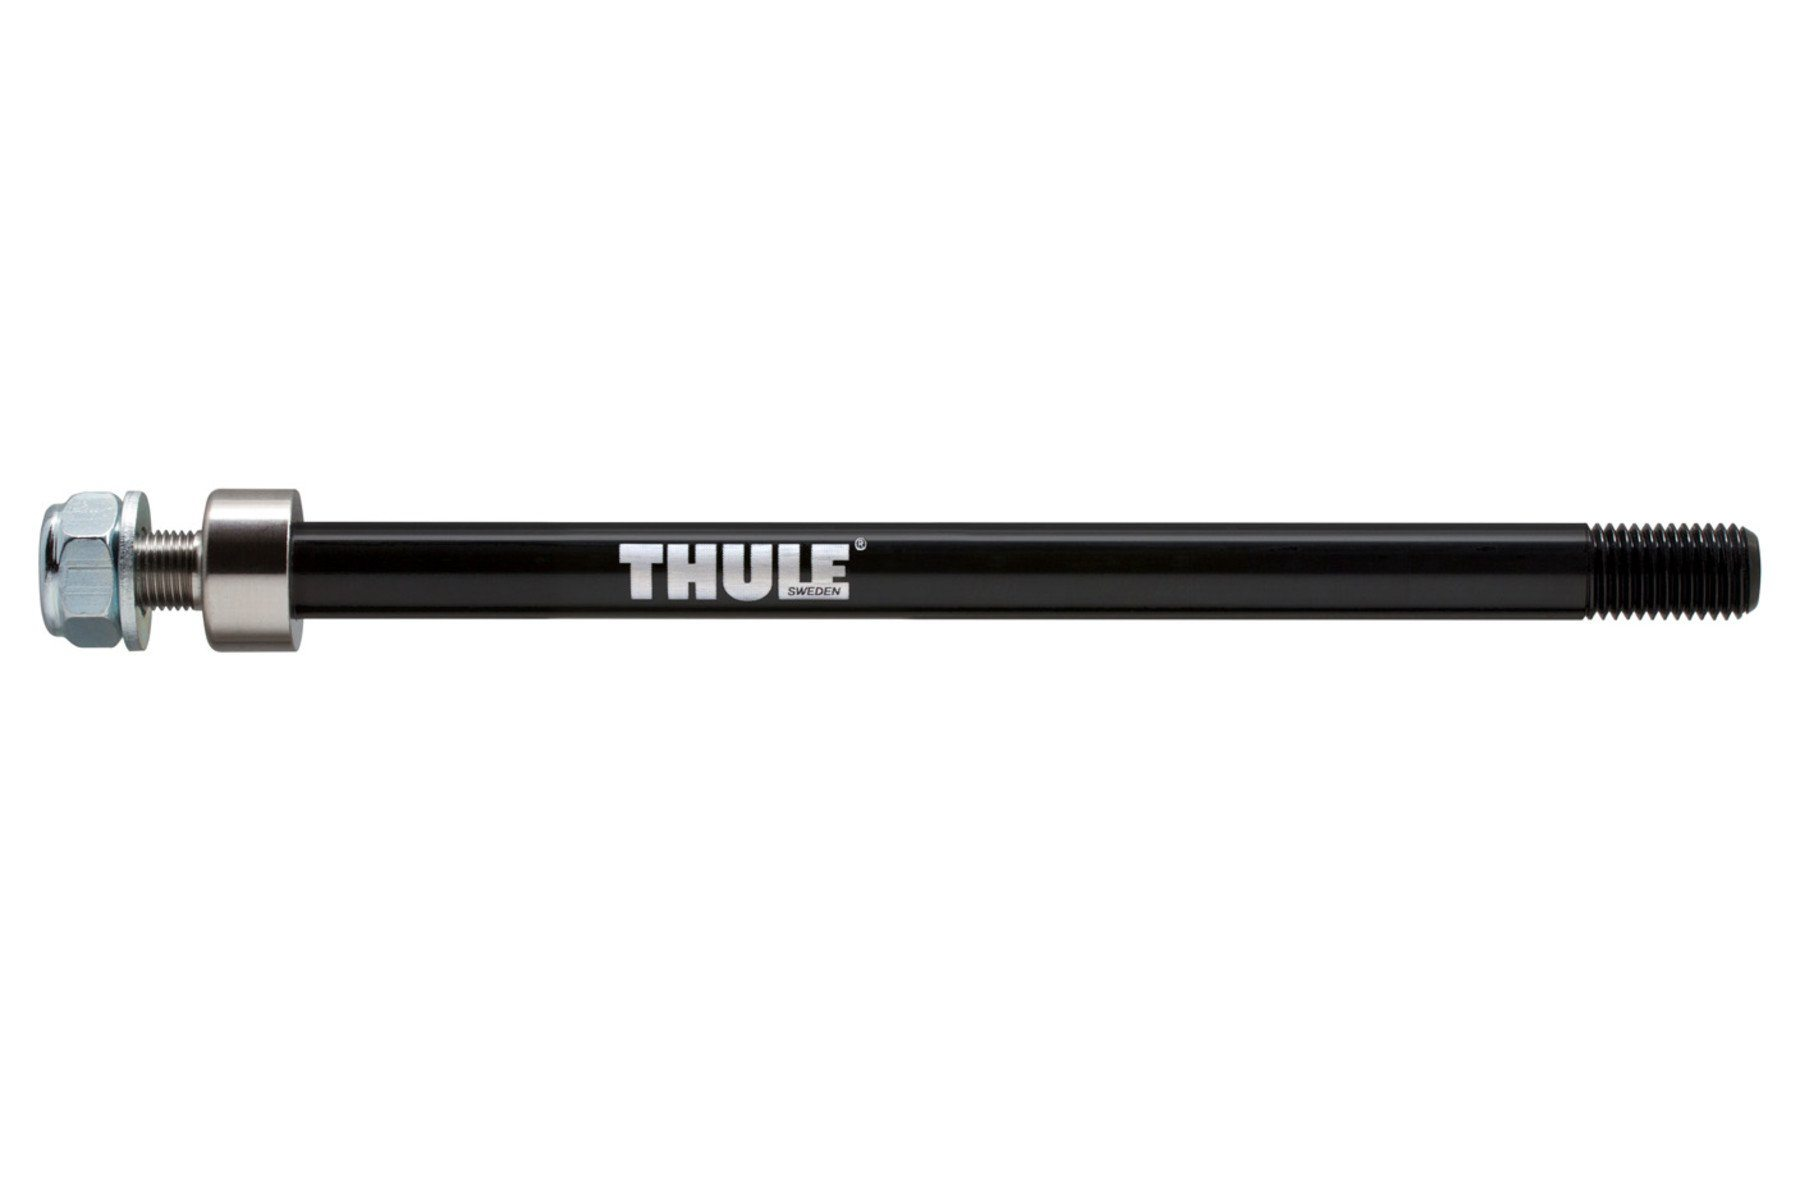 Thule Maxle/Thru Axle Adaptor - Cycles Galleria Melbourne